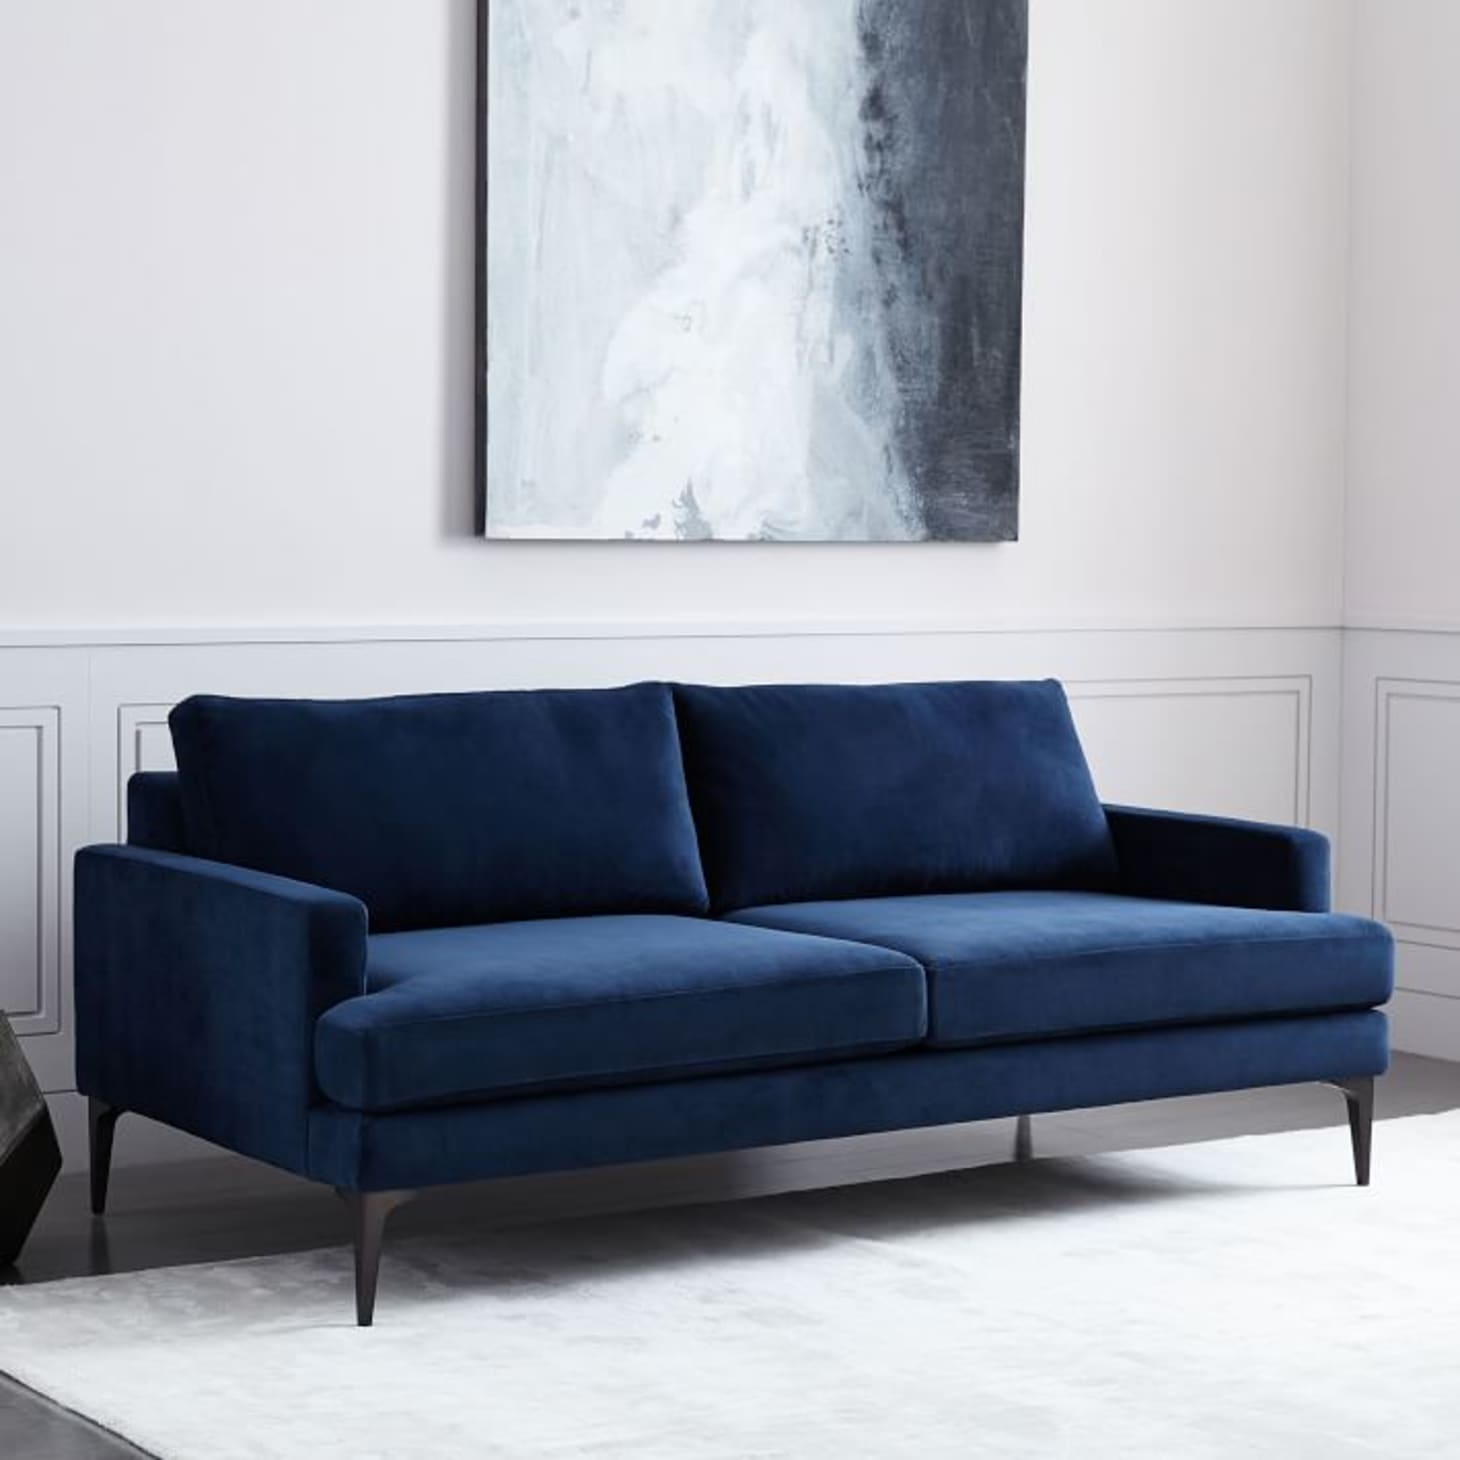 Astonishing West Elm Sale Best Couches Under 1000 Dollars Apartment Caraccident5 Cool Chair Designs And Ideas Caraccident5Info